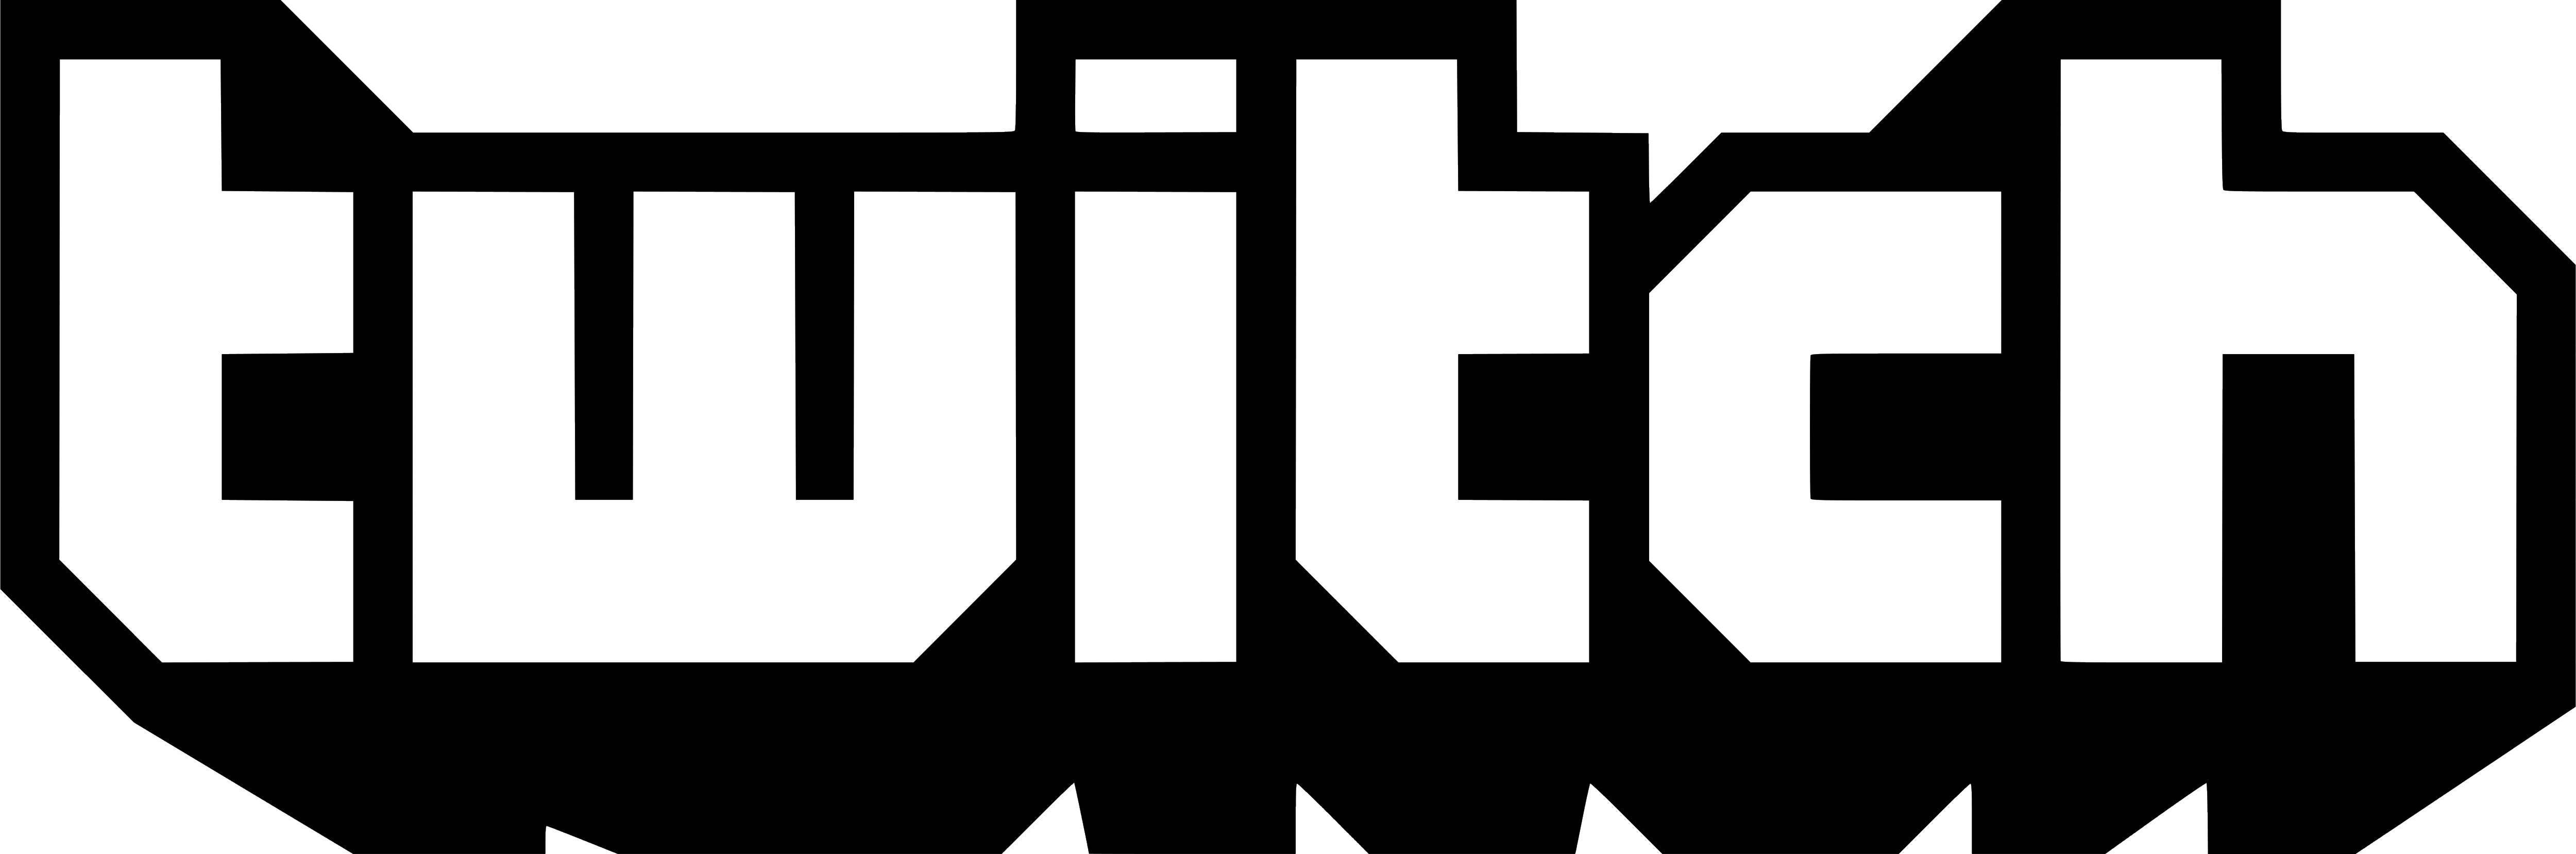 Twitch Logos Download